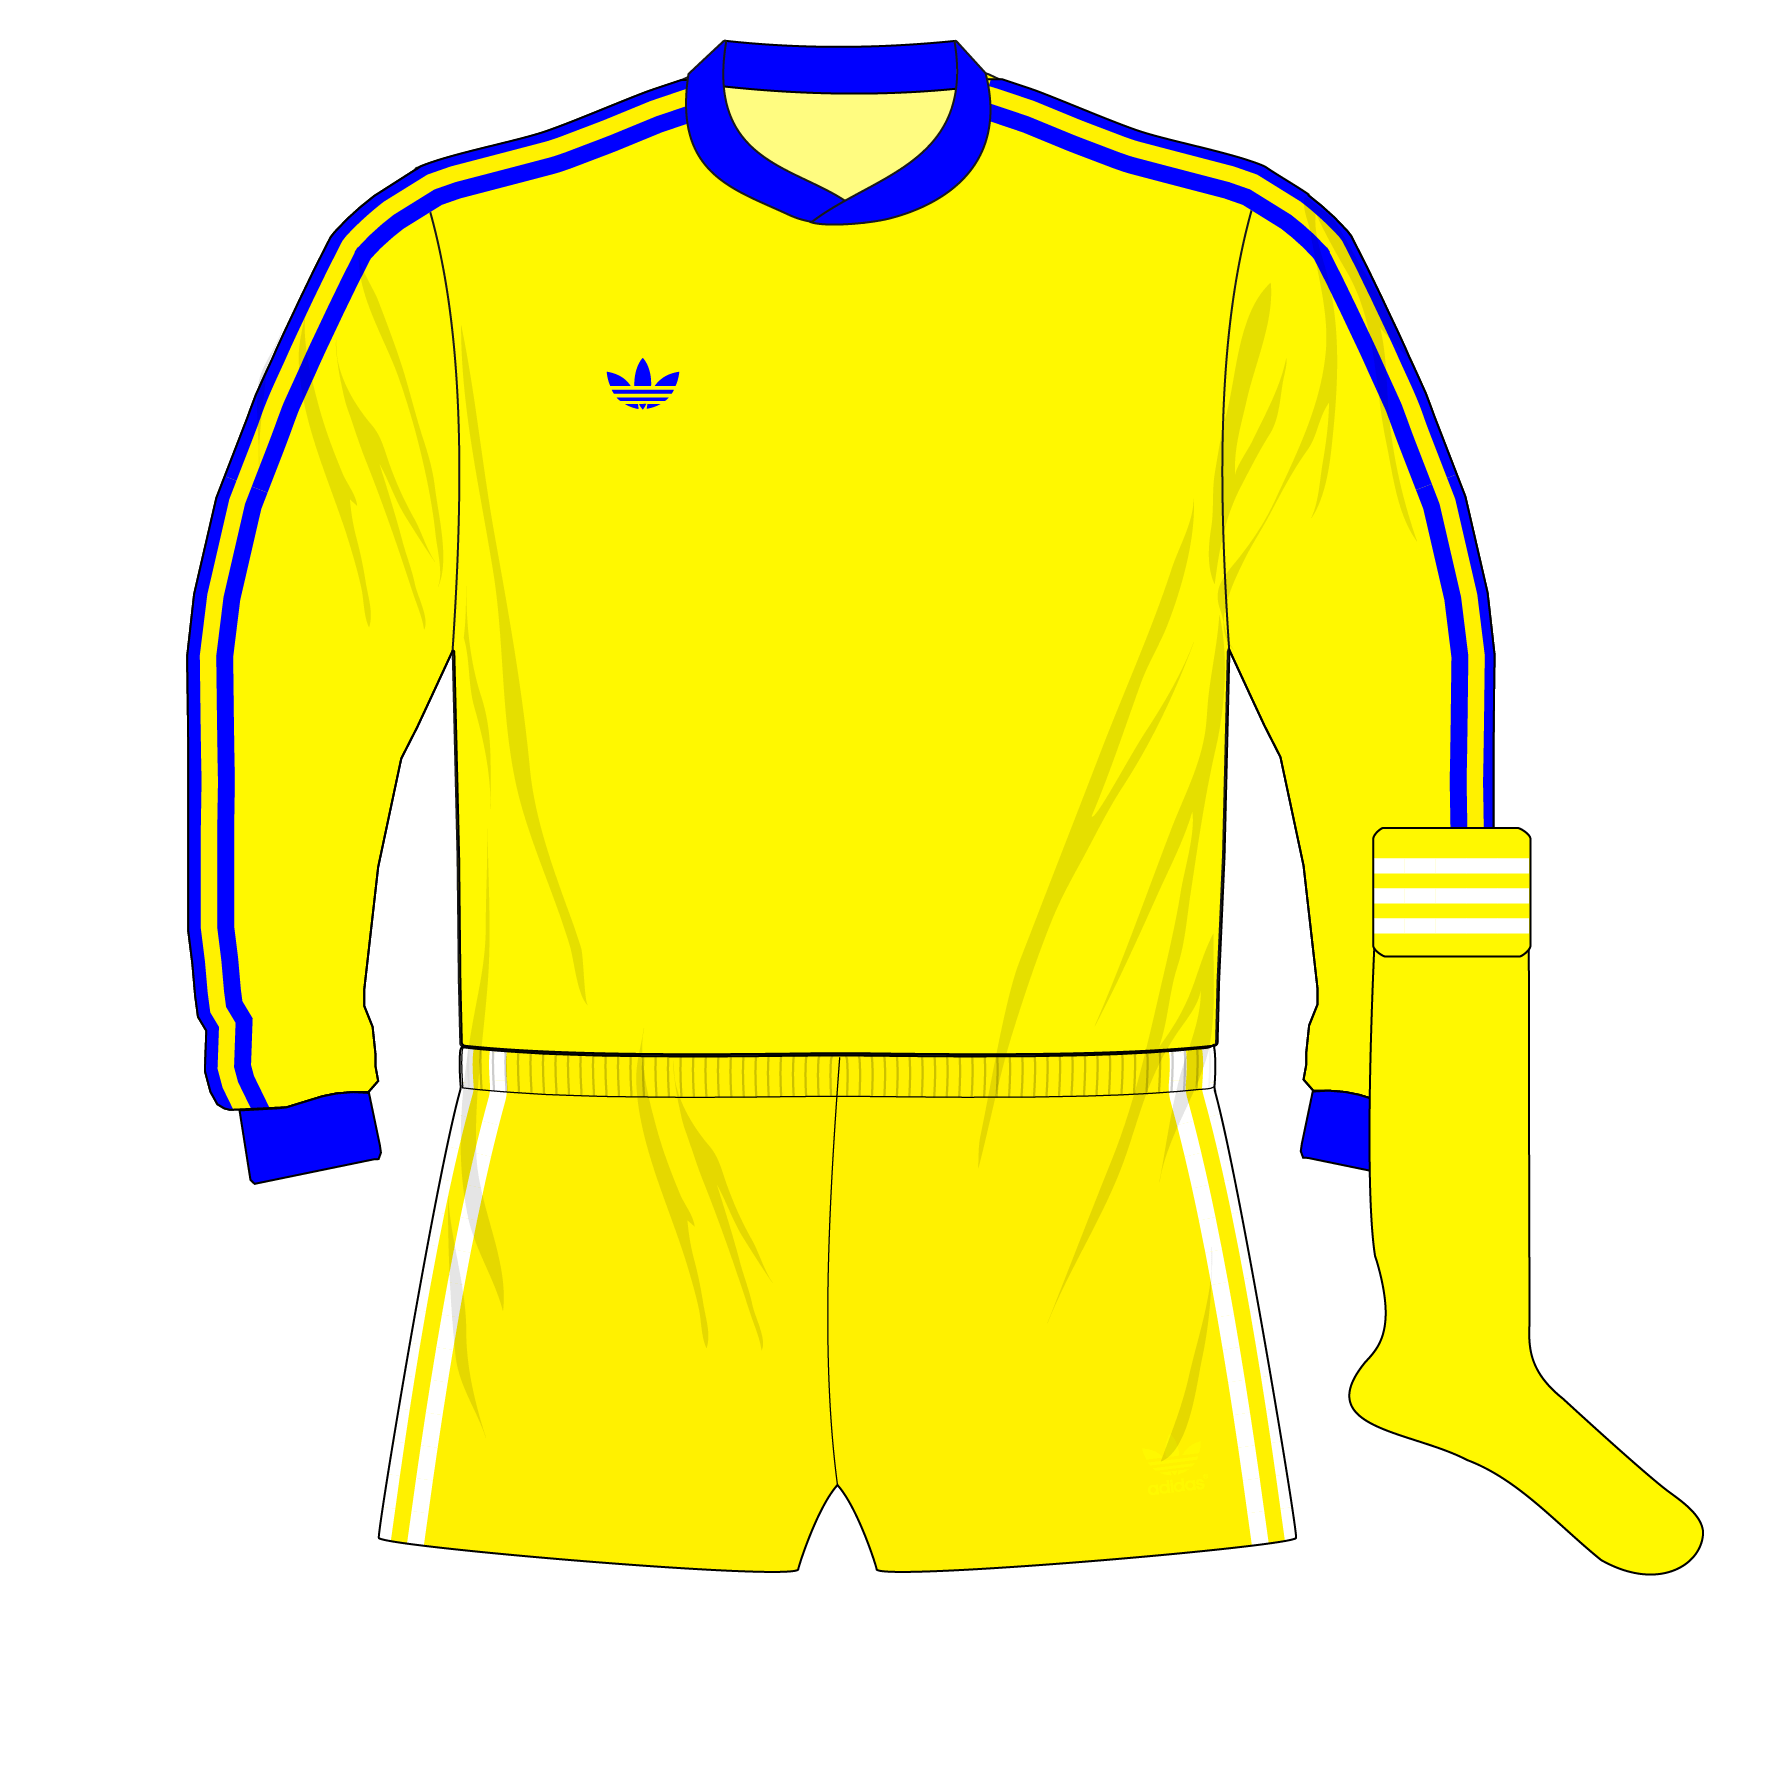 f95a57fdd7d The history of Romania's kits from 1984 to 1997 – Museum of Jerseys